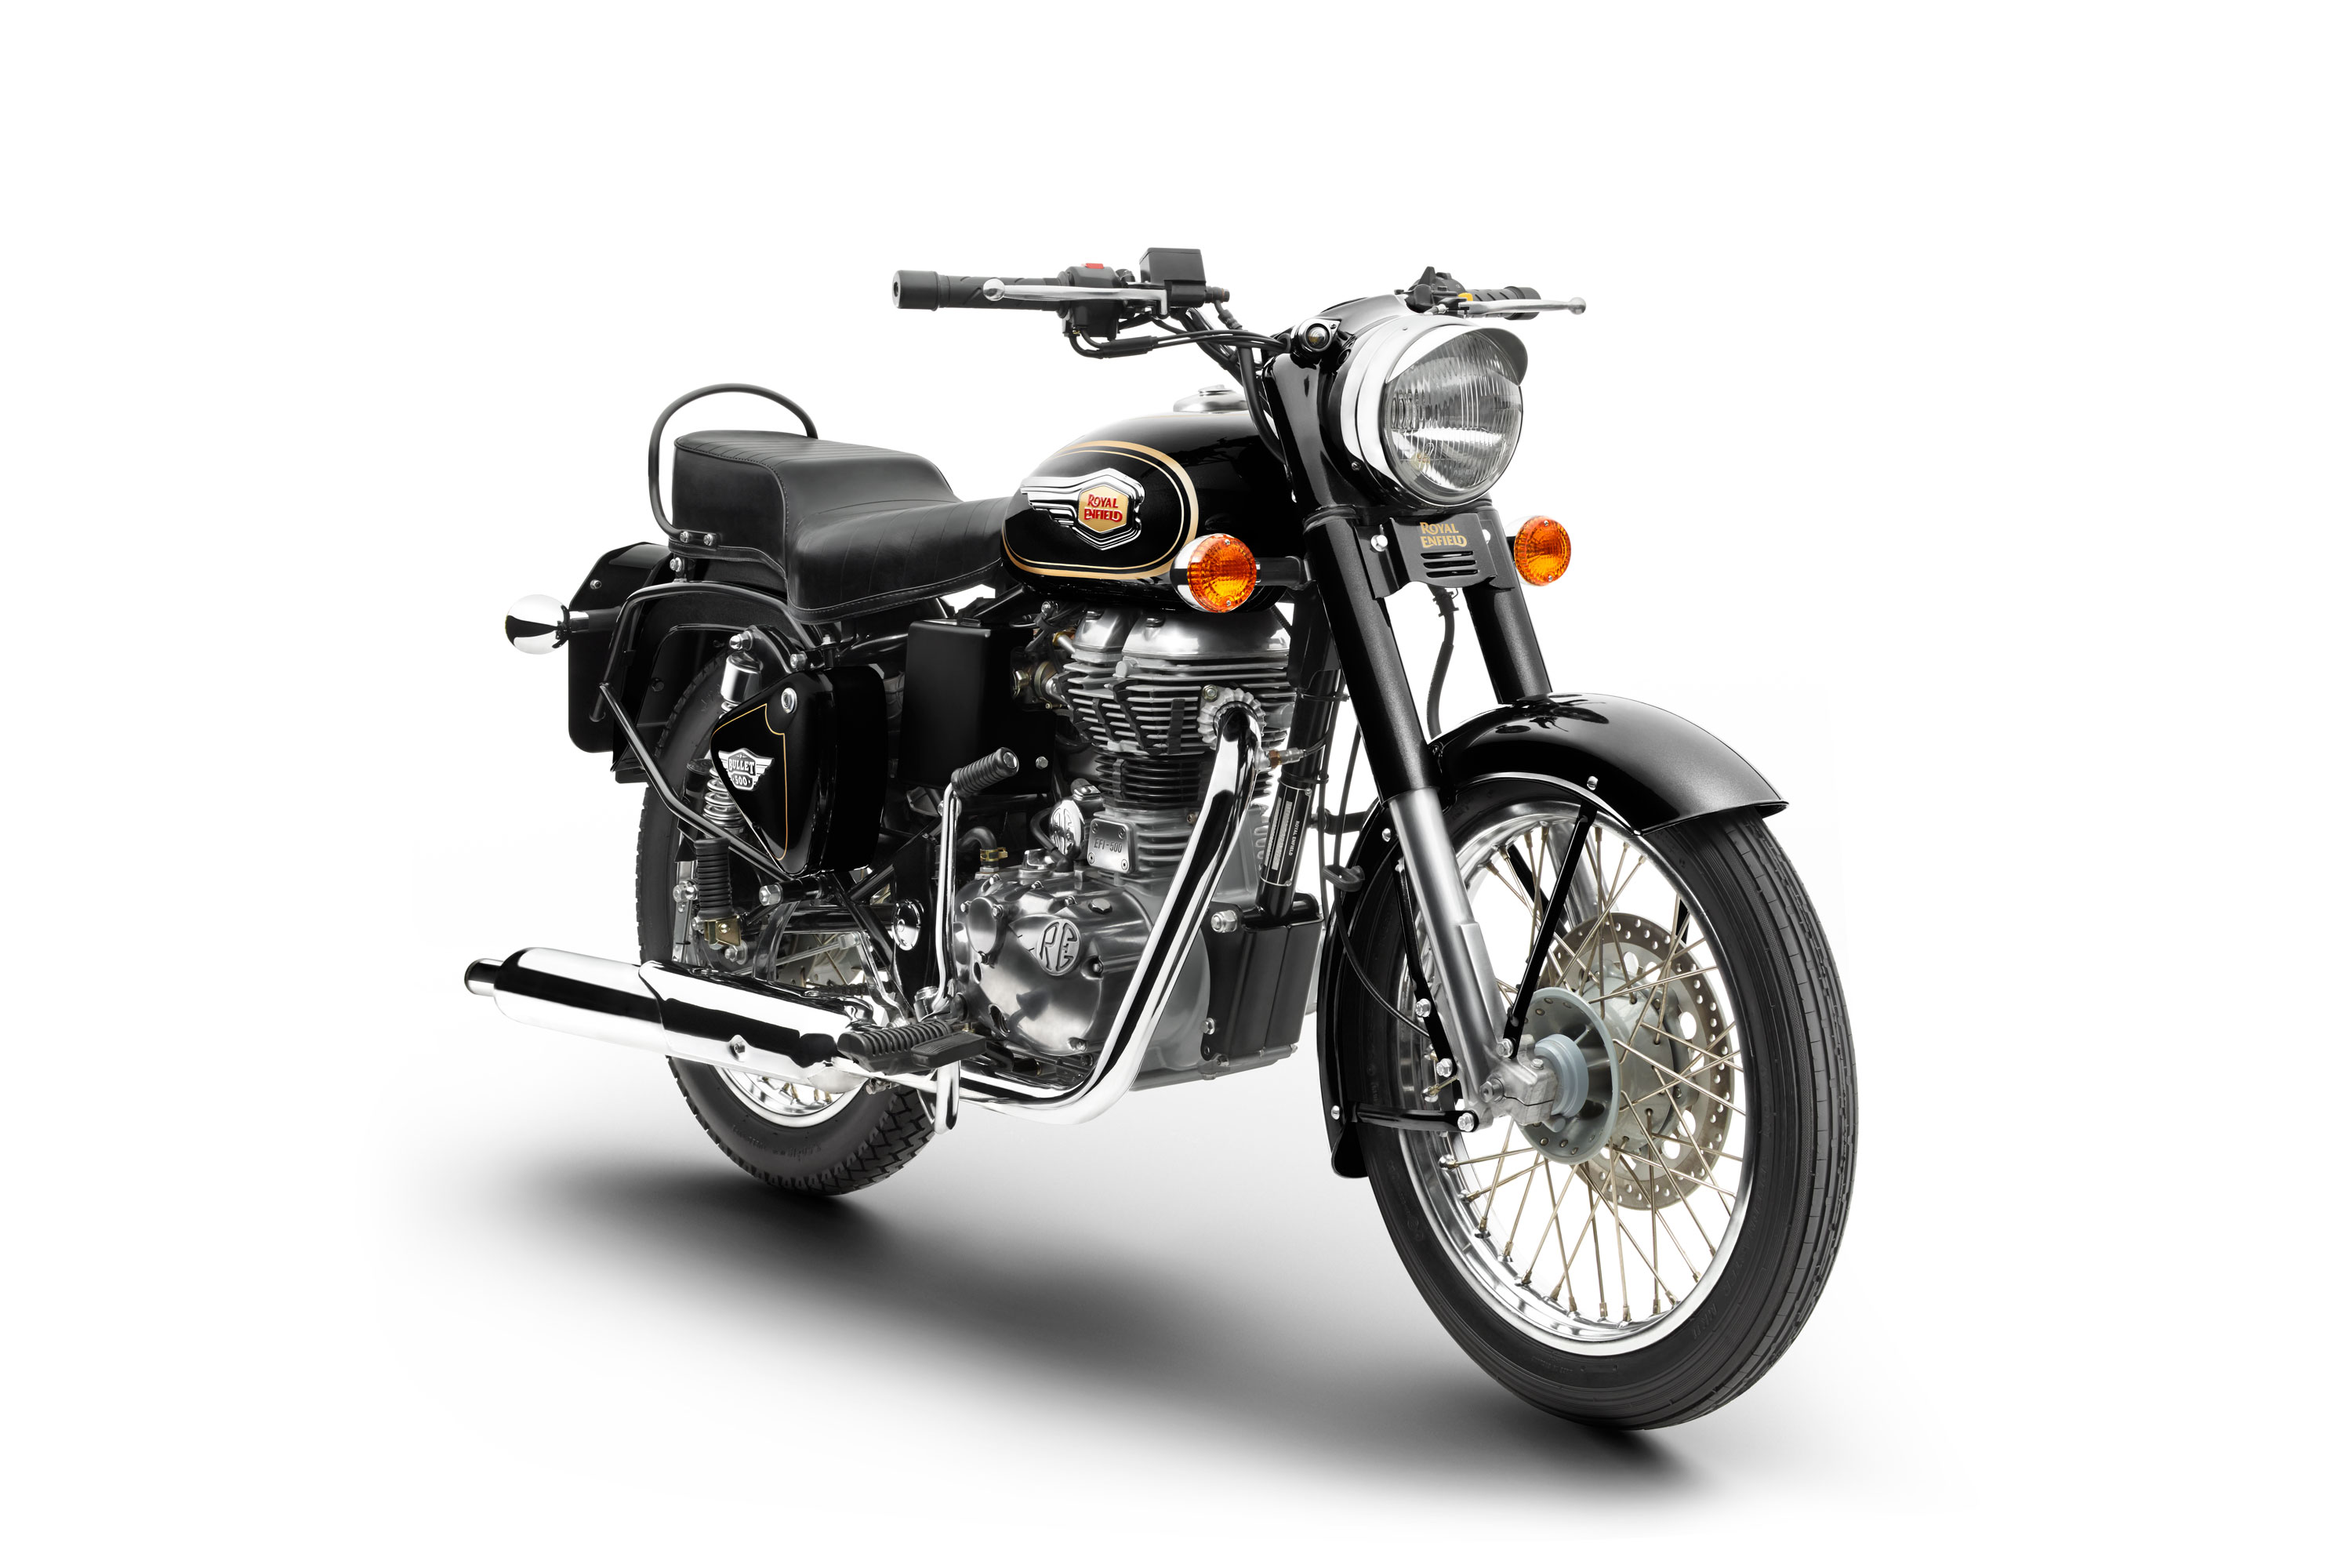 royalenfield_bullet500_black_002